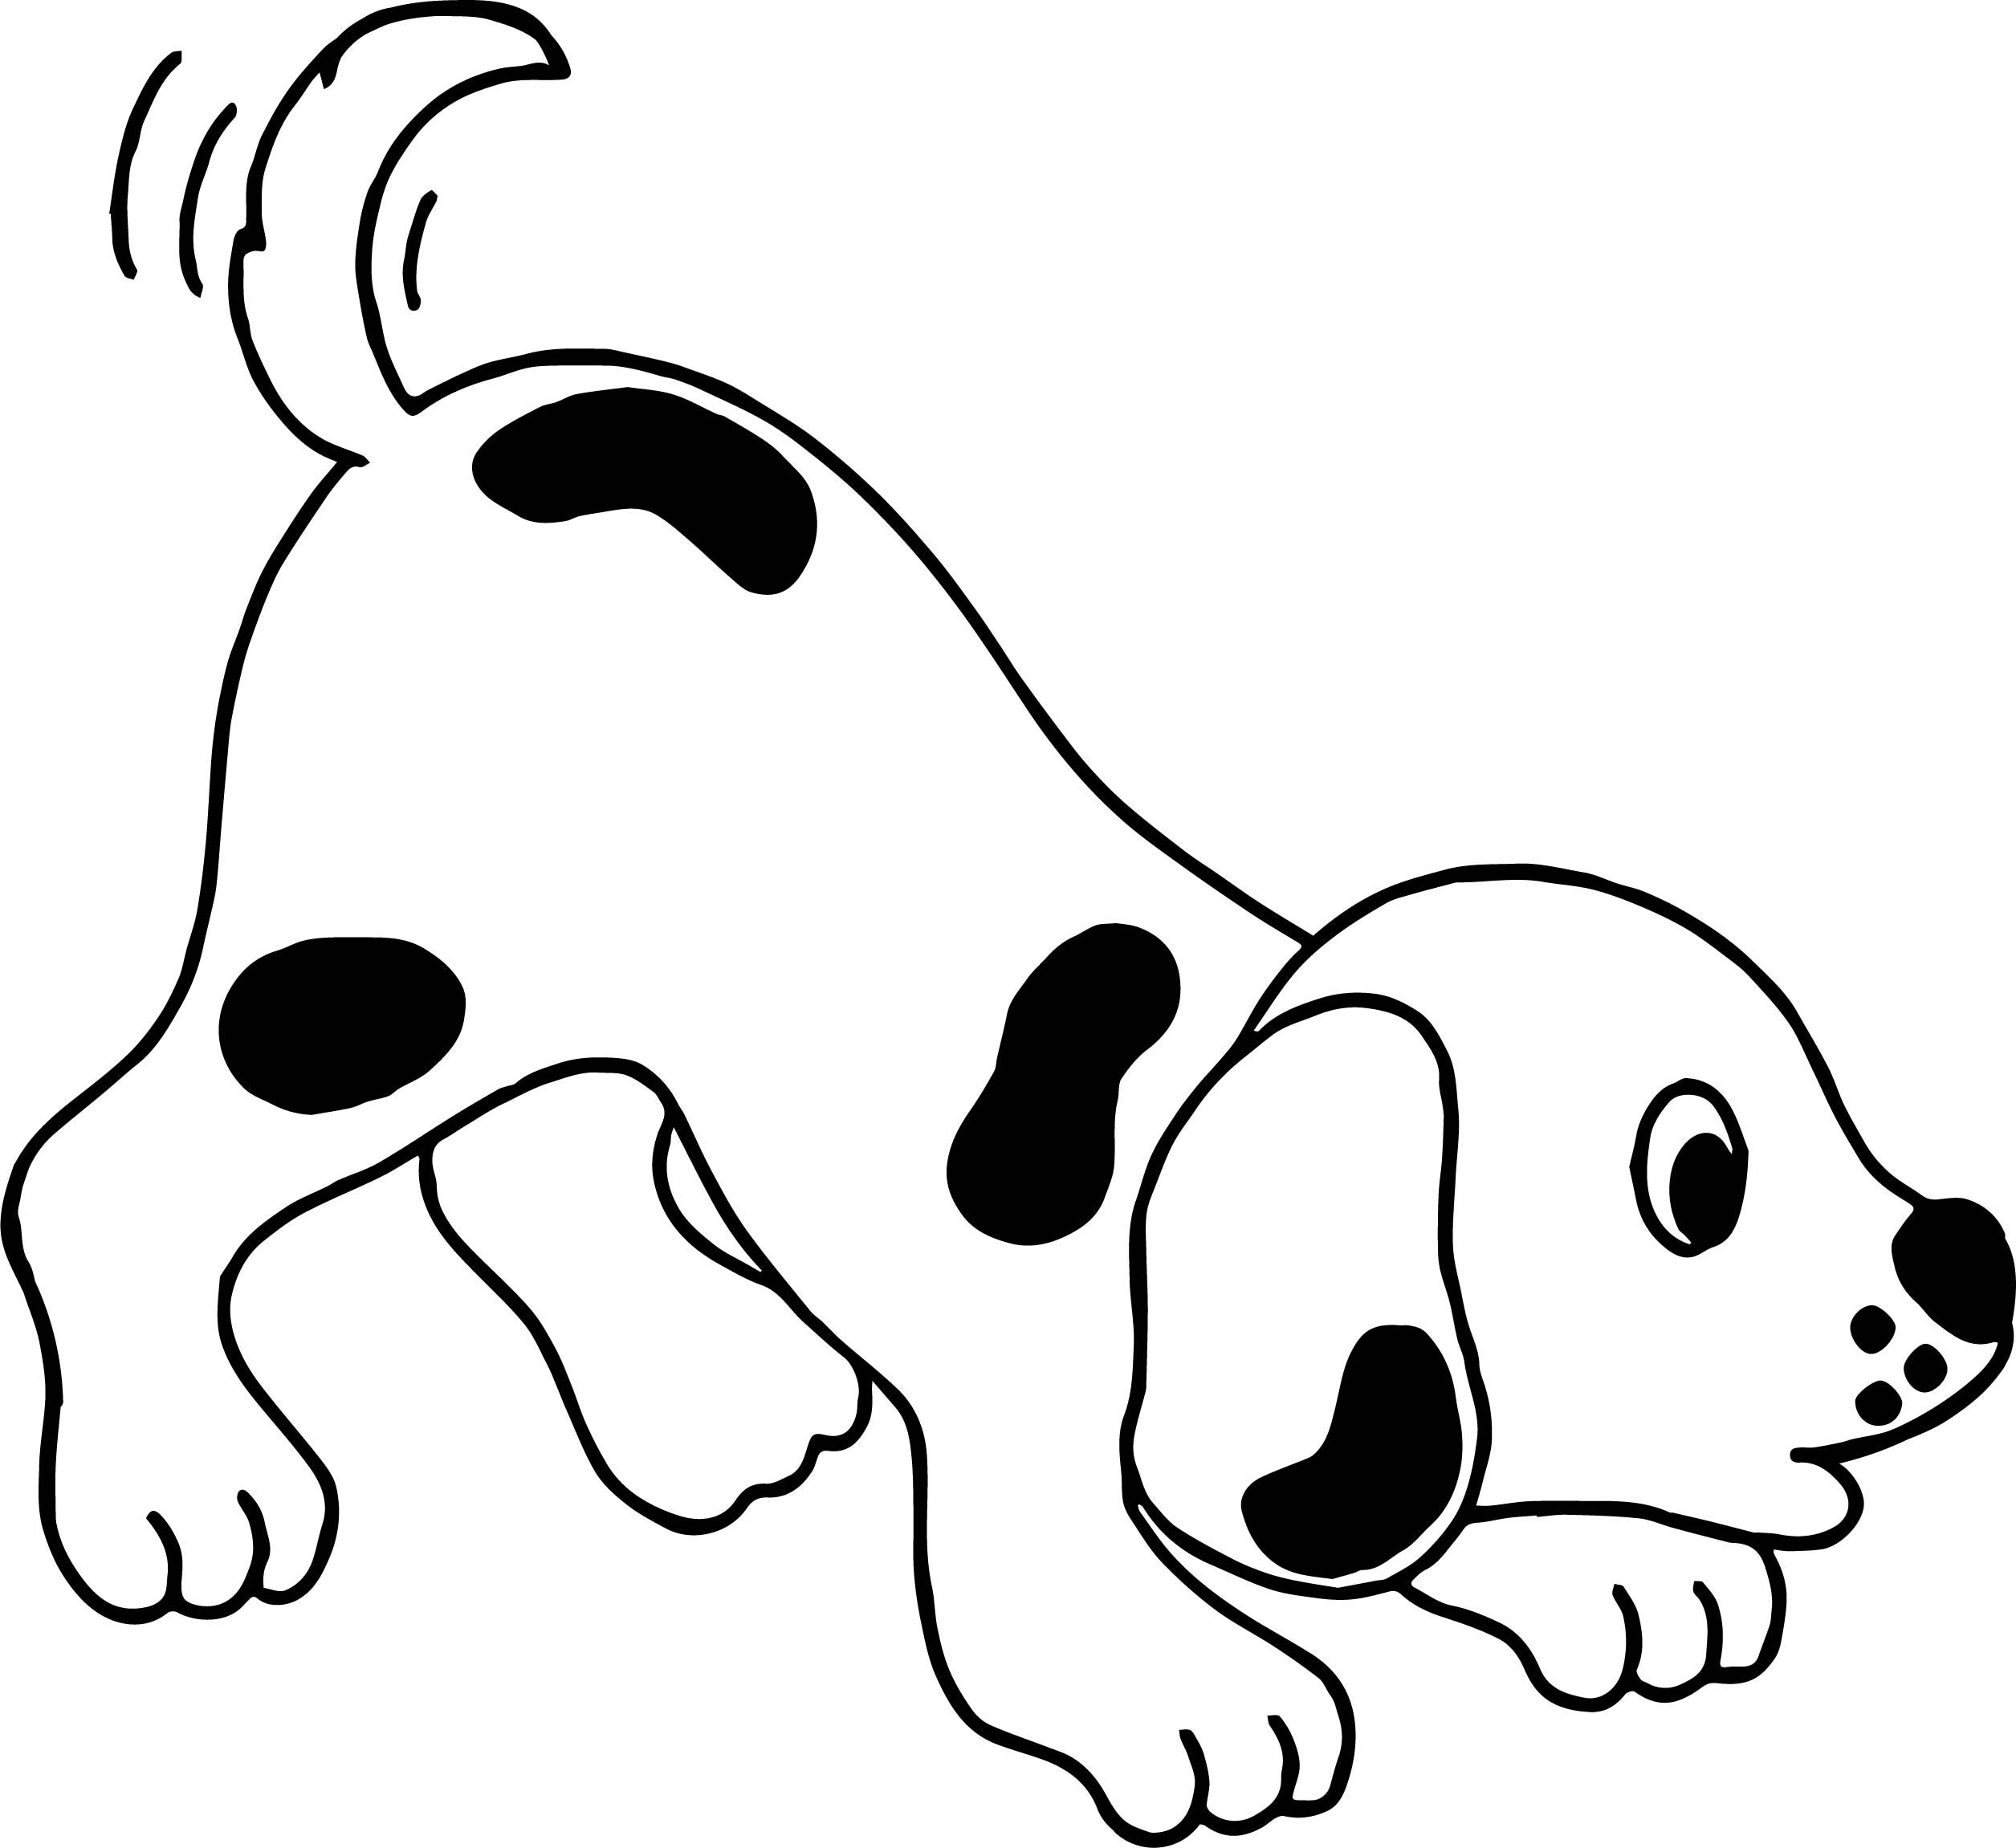 Cool Crying Puppy Playful Cartoon Puppy Dog Coloring Page Puppy Coloring Pages Dog Coloring Book Dog Coloring Page